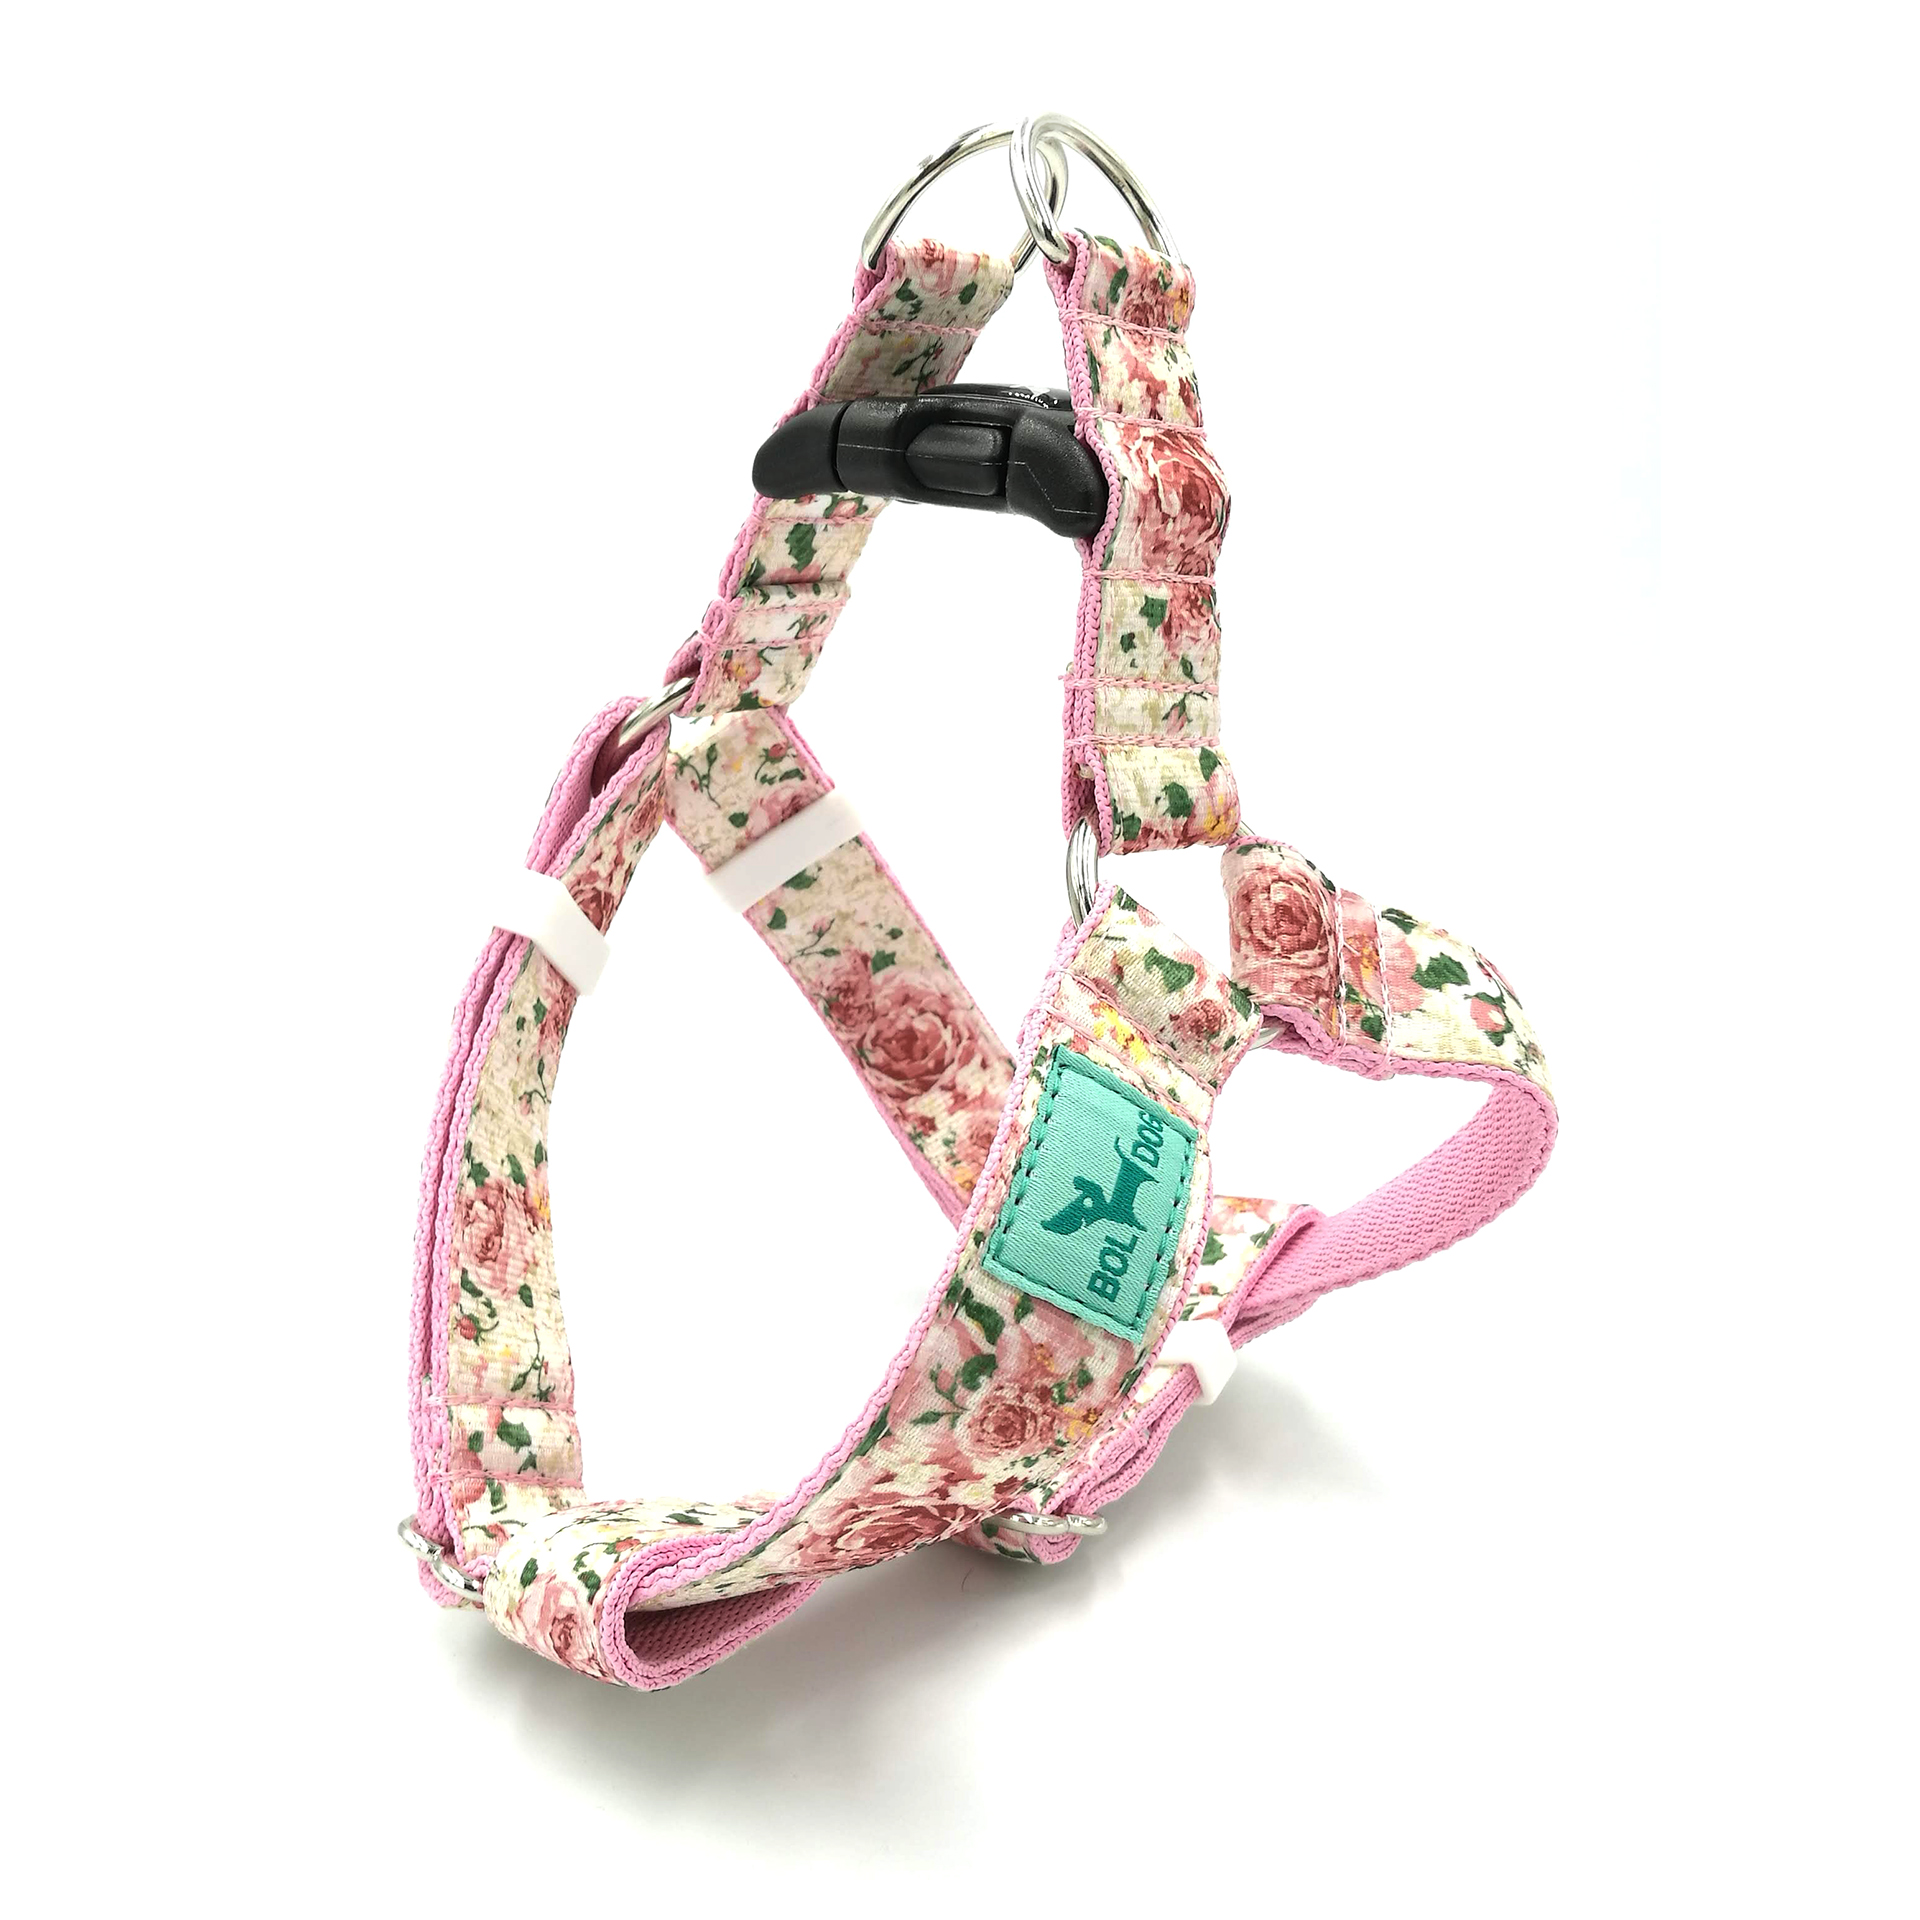 Rose dog harness